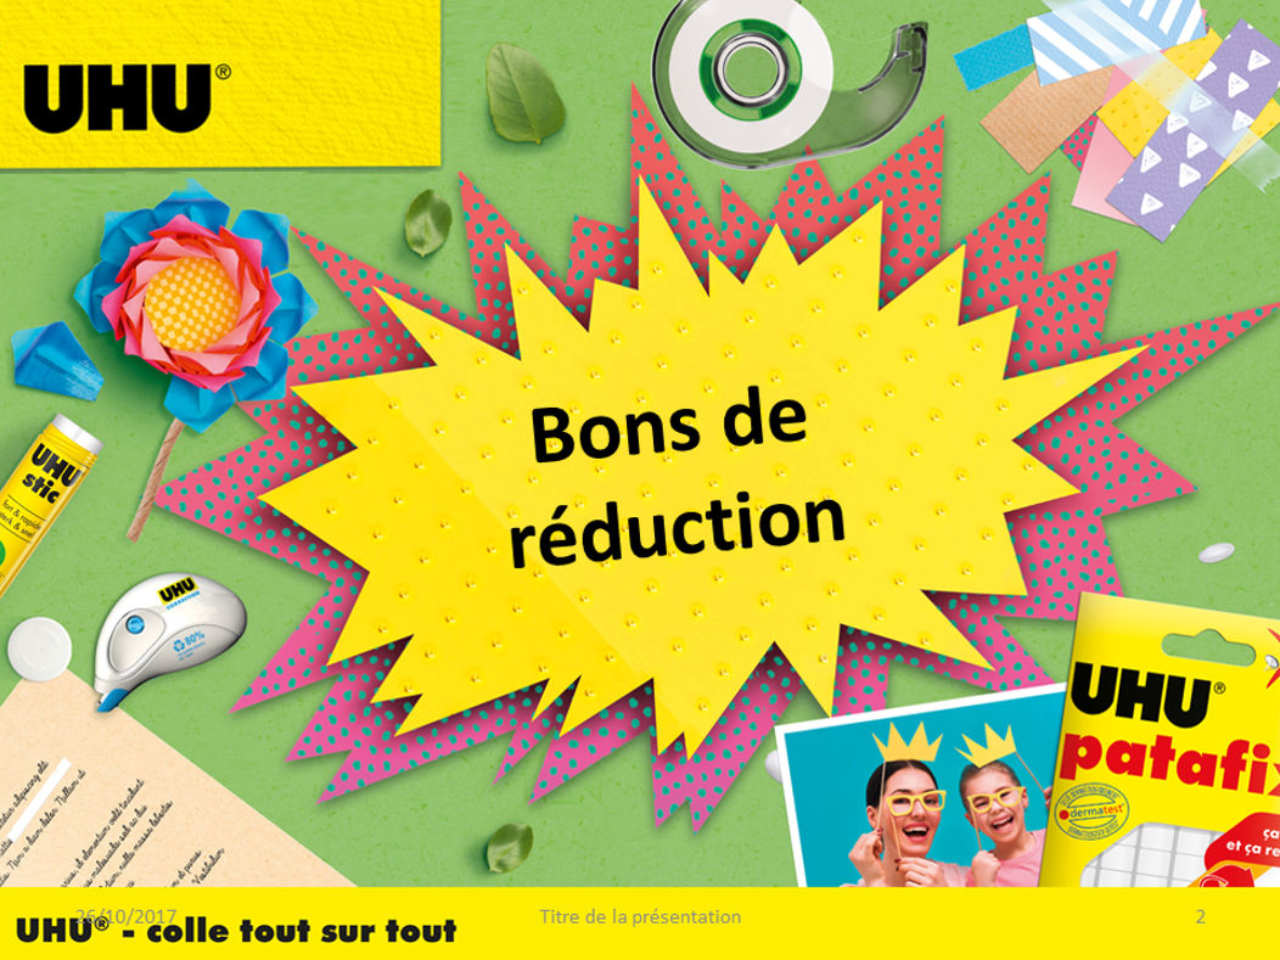 Bons de réduction